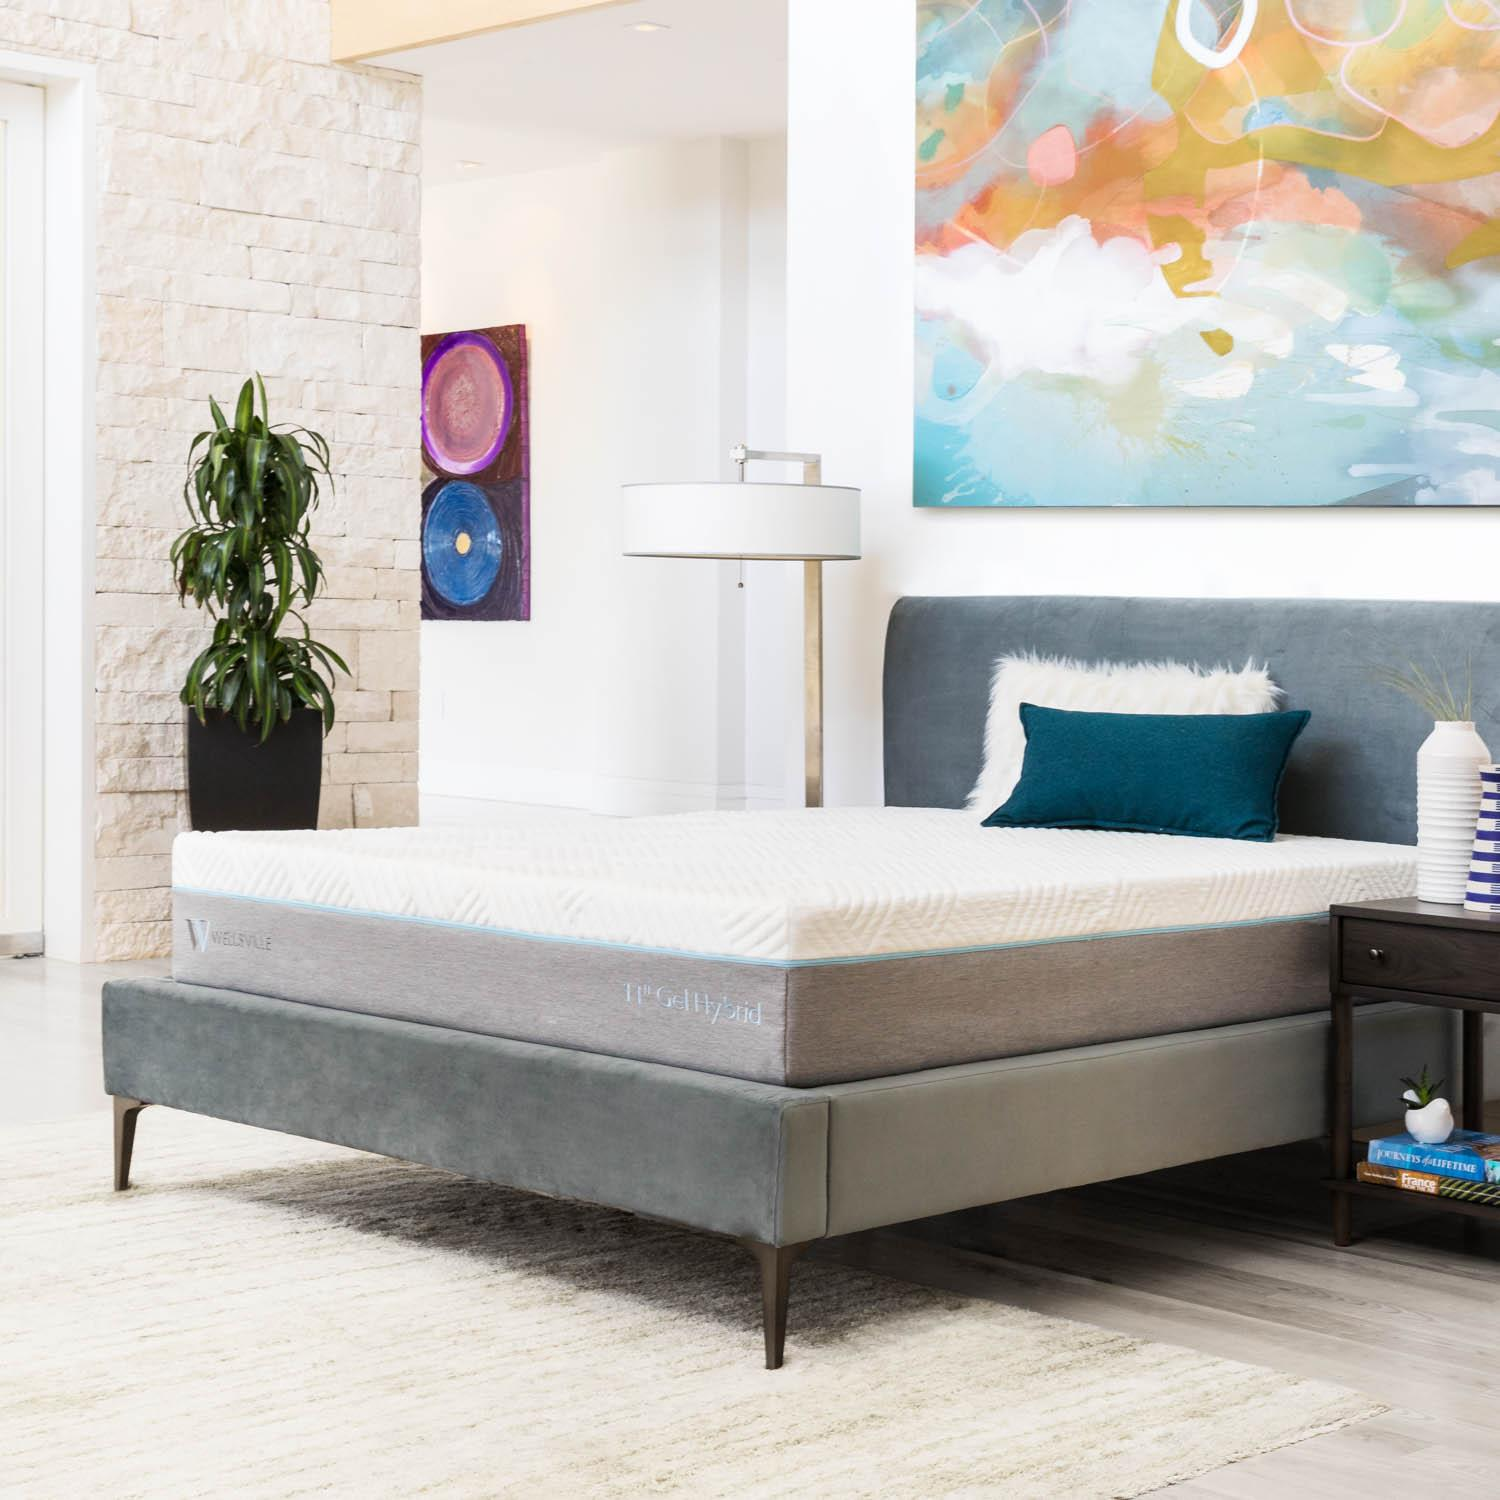 Wellsville 11 Inch Gel Memory Foam Hybrid Mattress King,Bayit Furniture Line